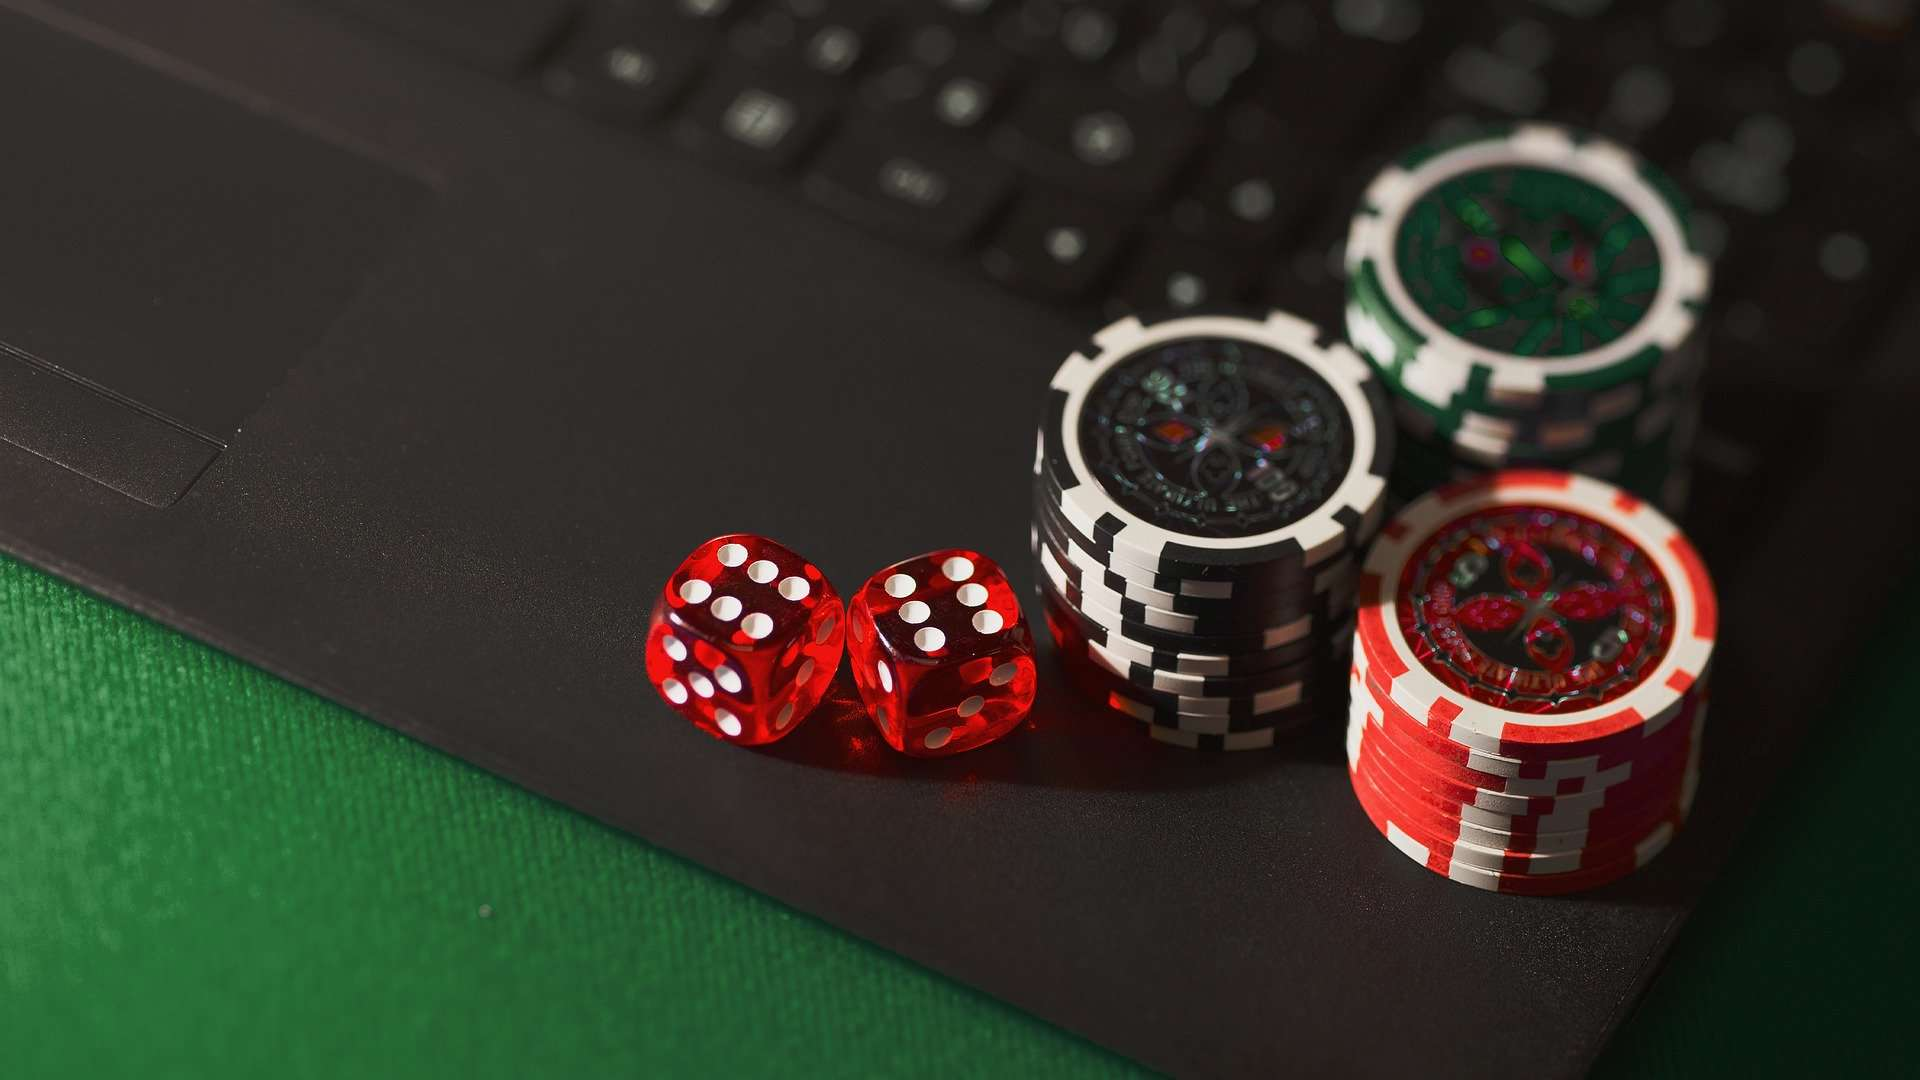 Before Joining Online Casino - Things to Know Before Joining an Online Casino In New Zealand